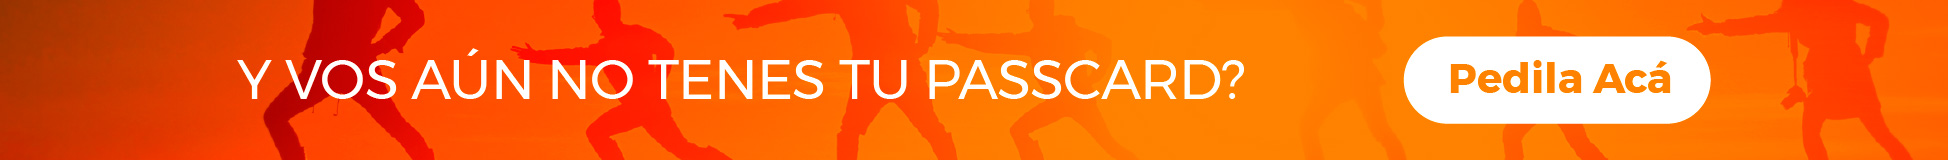 Passcard Page